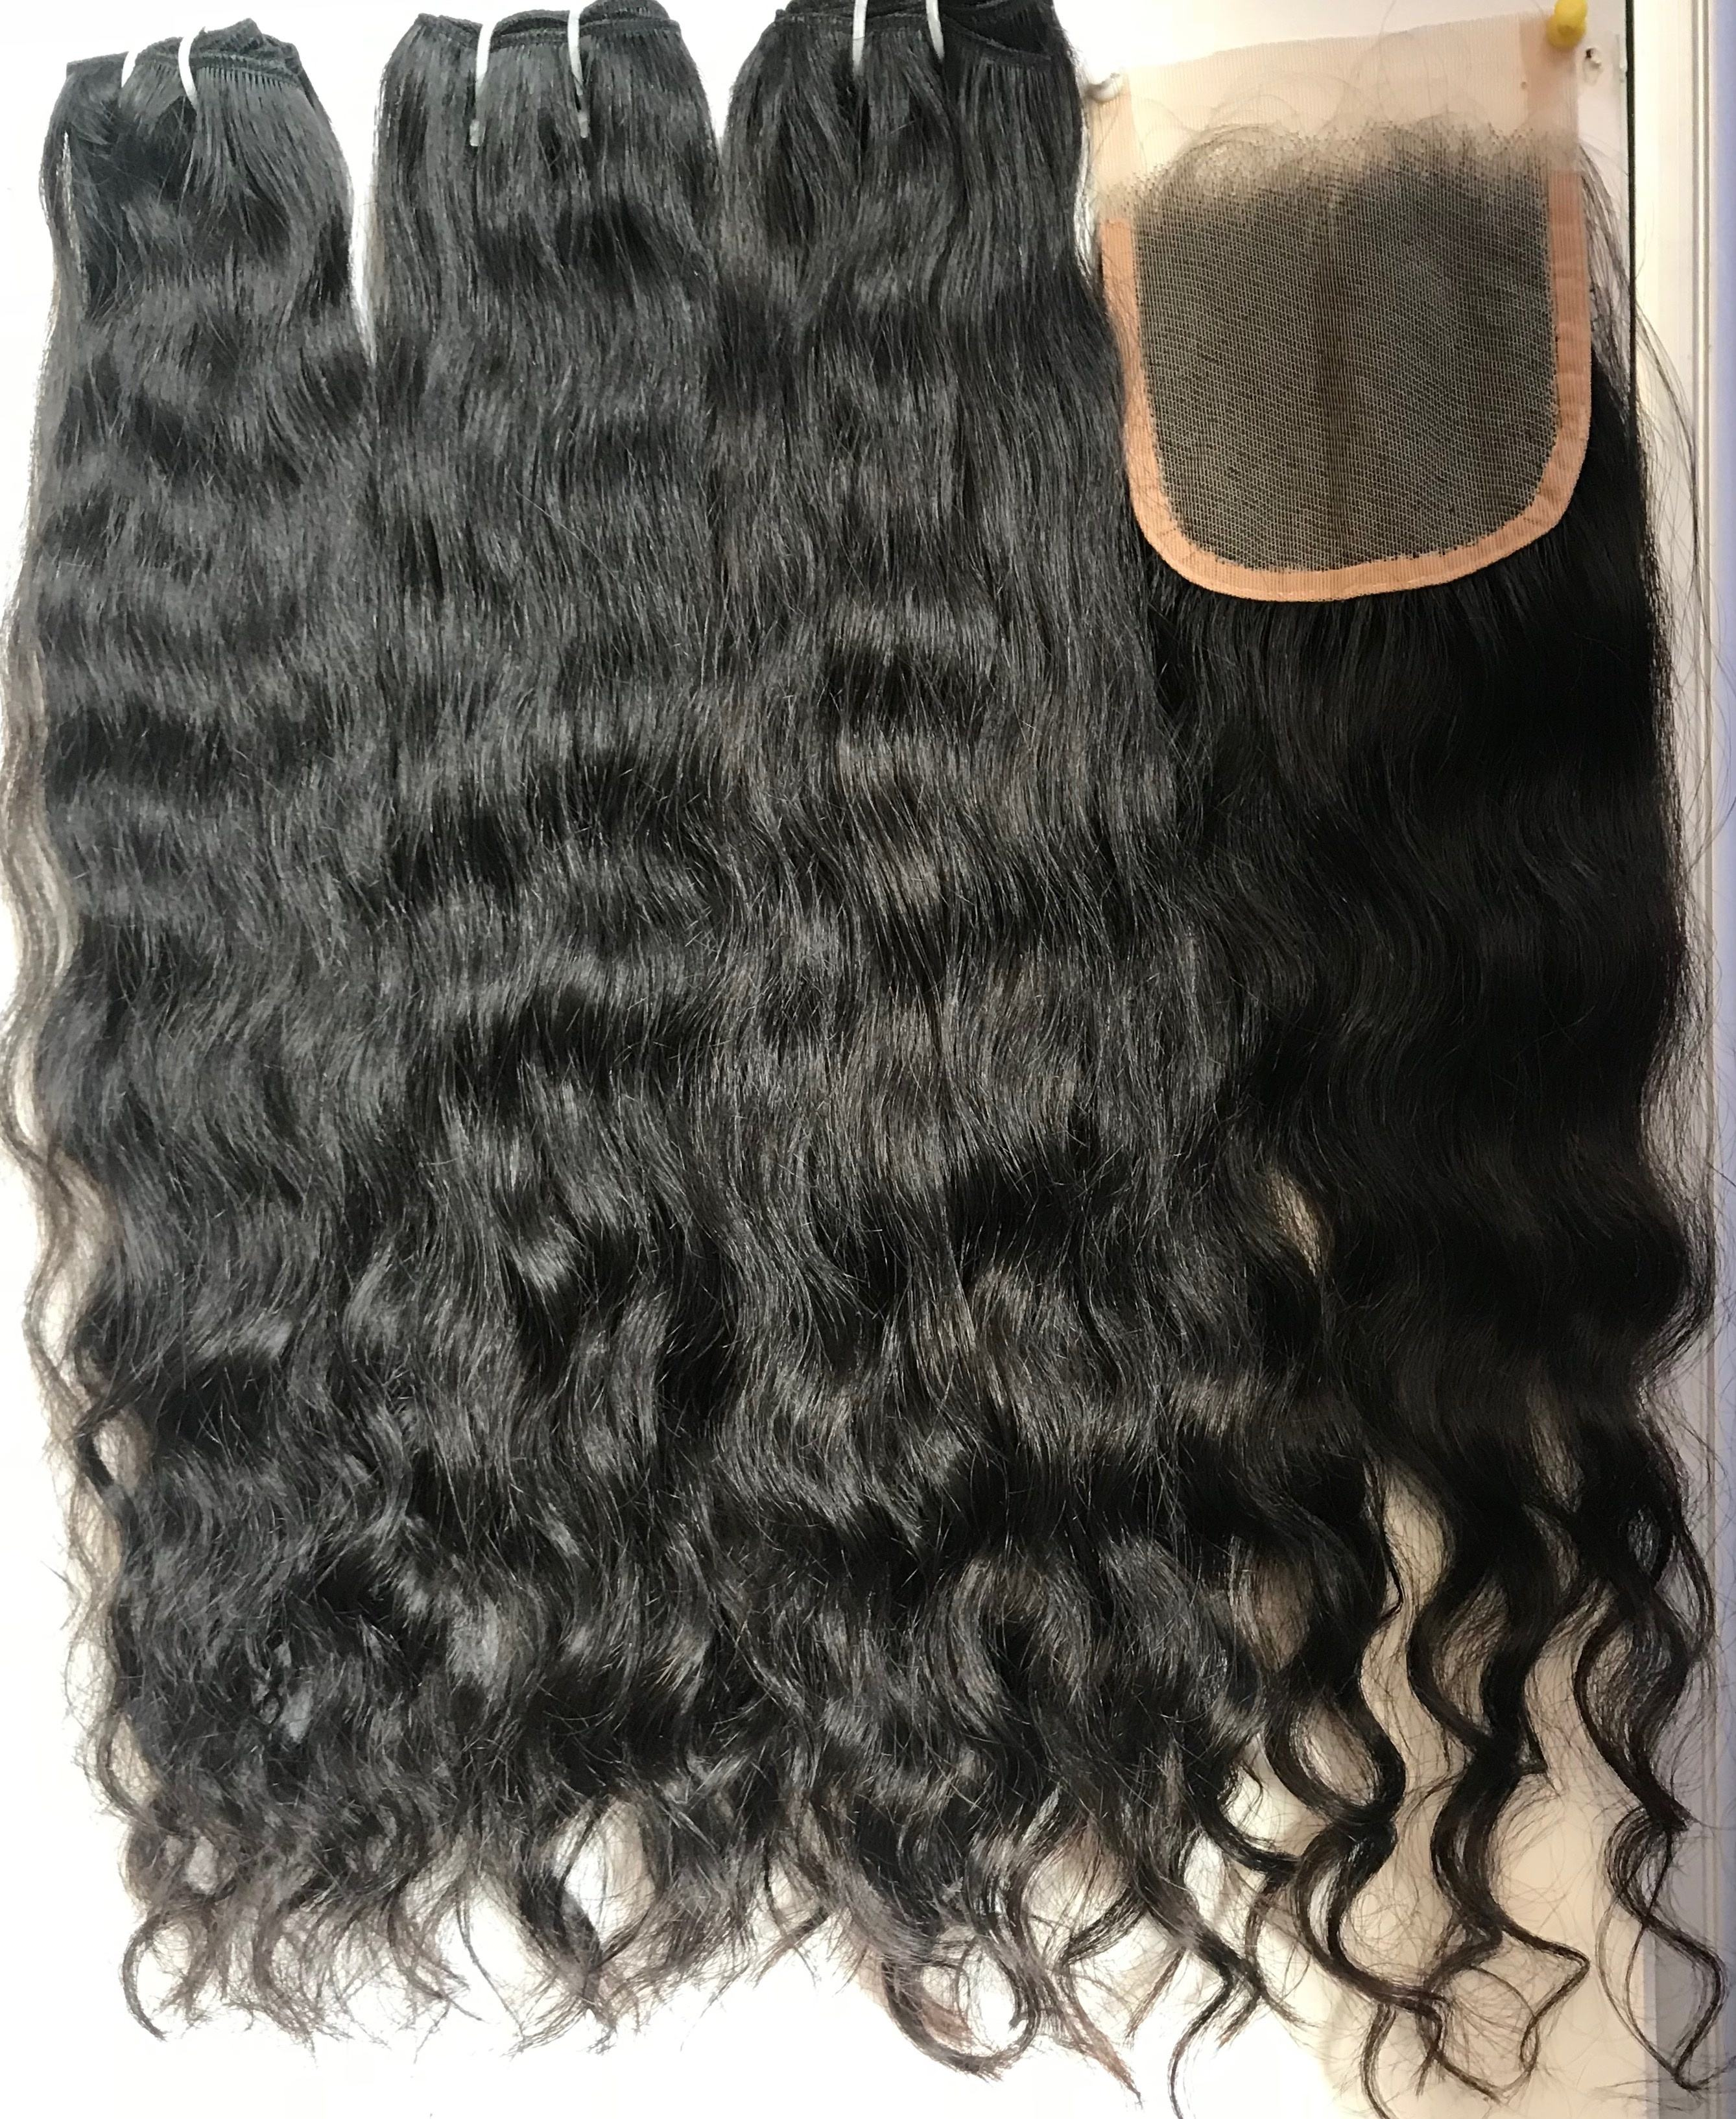 Brazilian Hair Extensions, Indian Temple Hair Extension